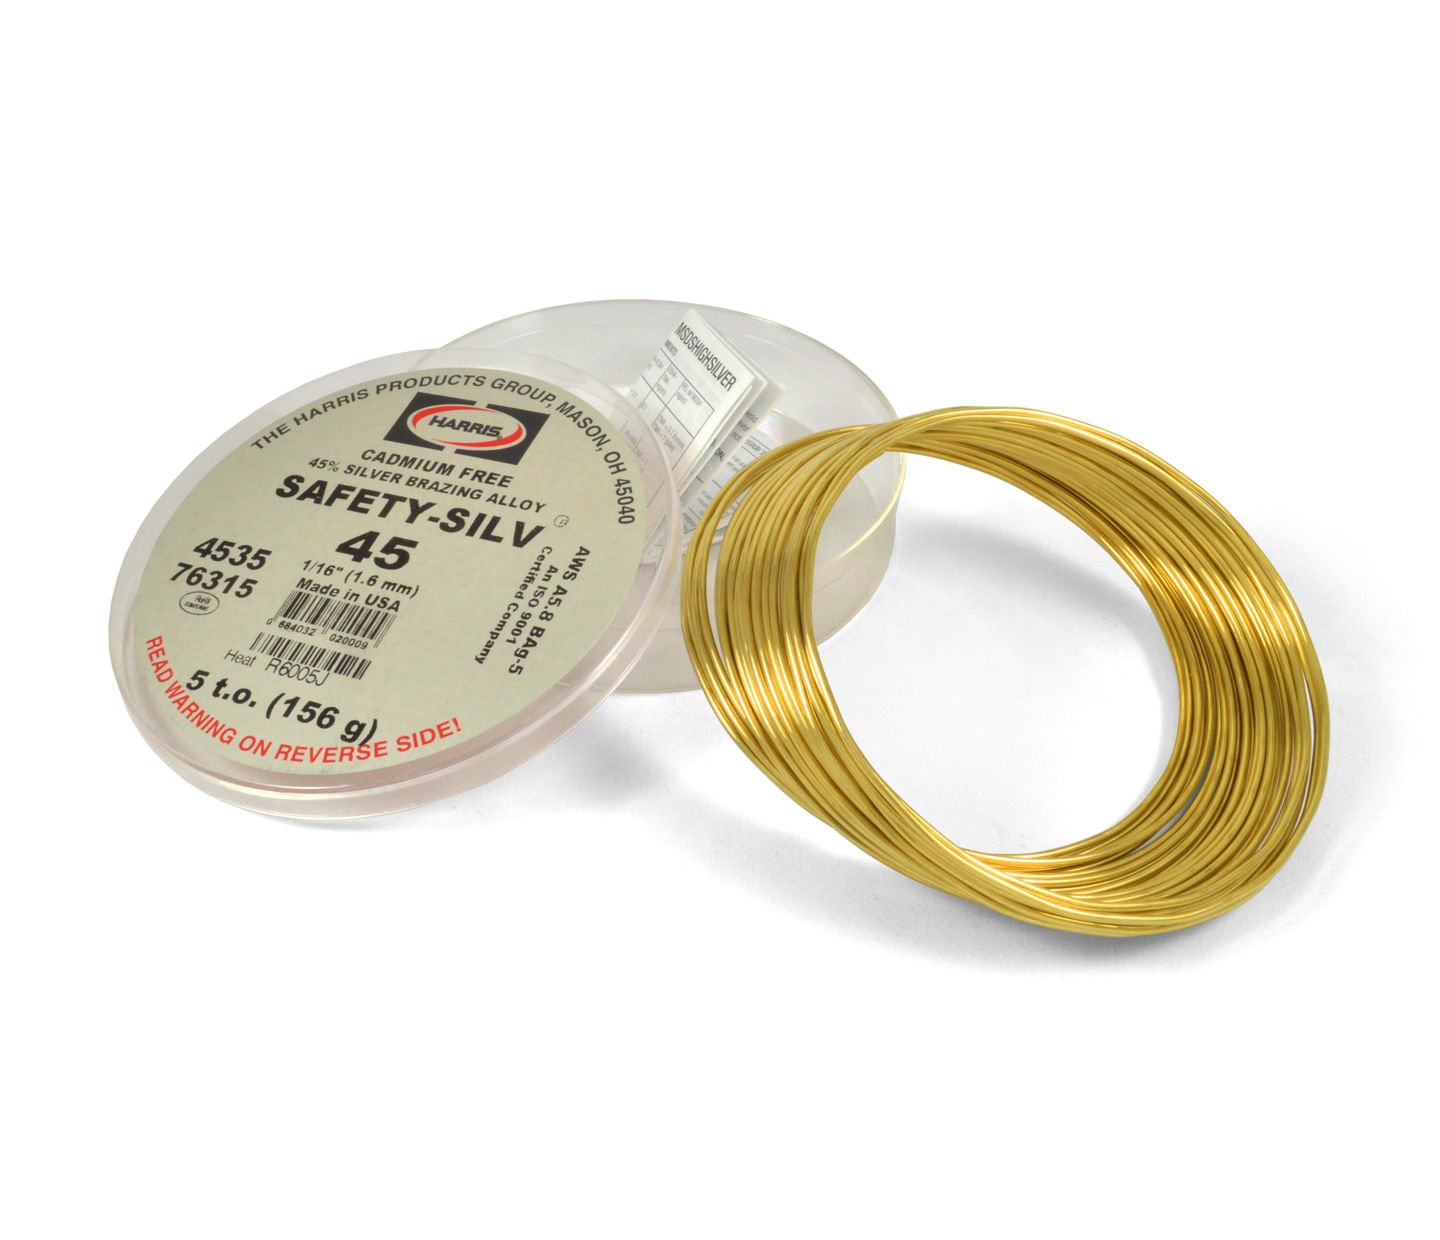 Harris Safety-Silv 45% 1/16 Silver Solder Brazing Alloy 5 Troy Ounce, 76315 4535 by Harris (Image #1)